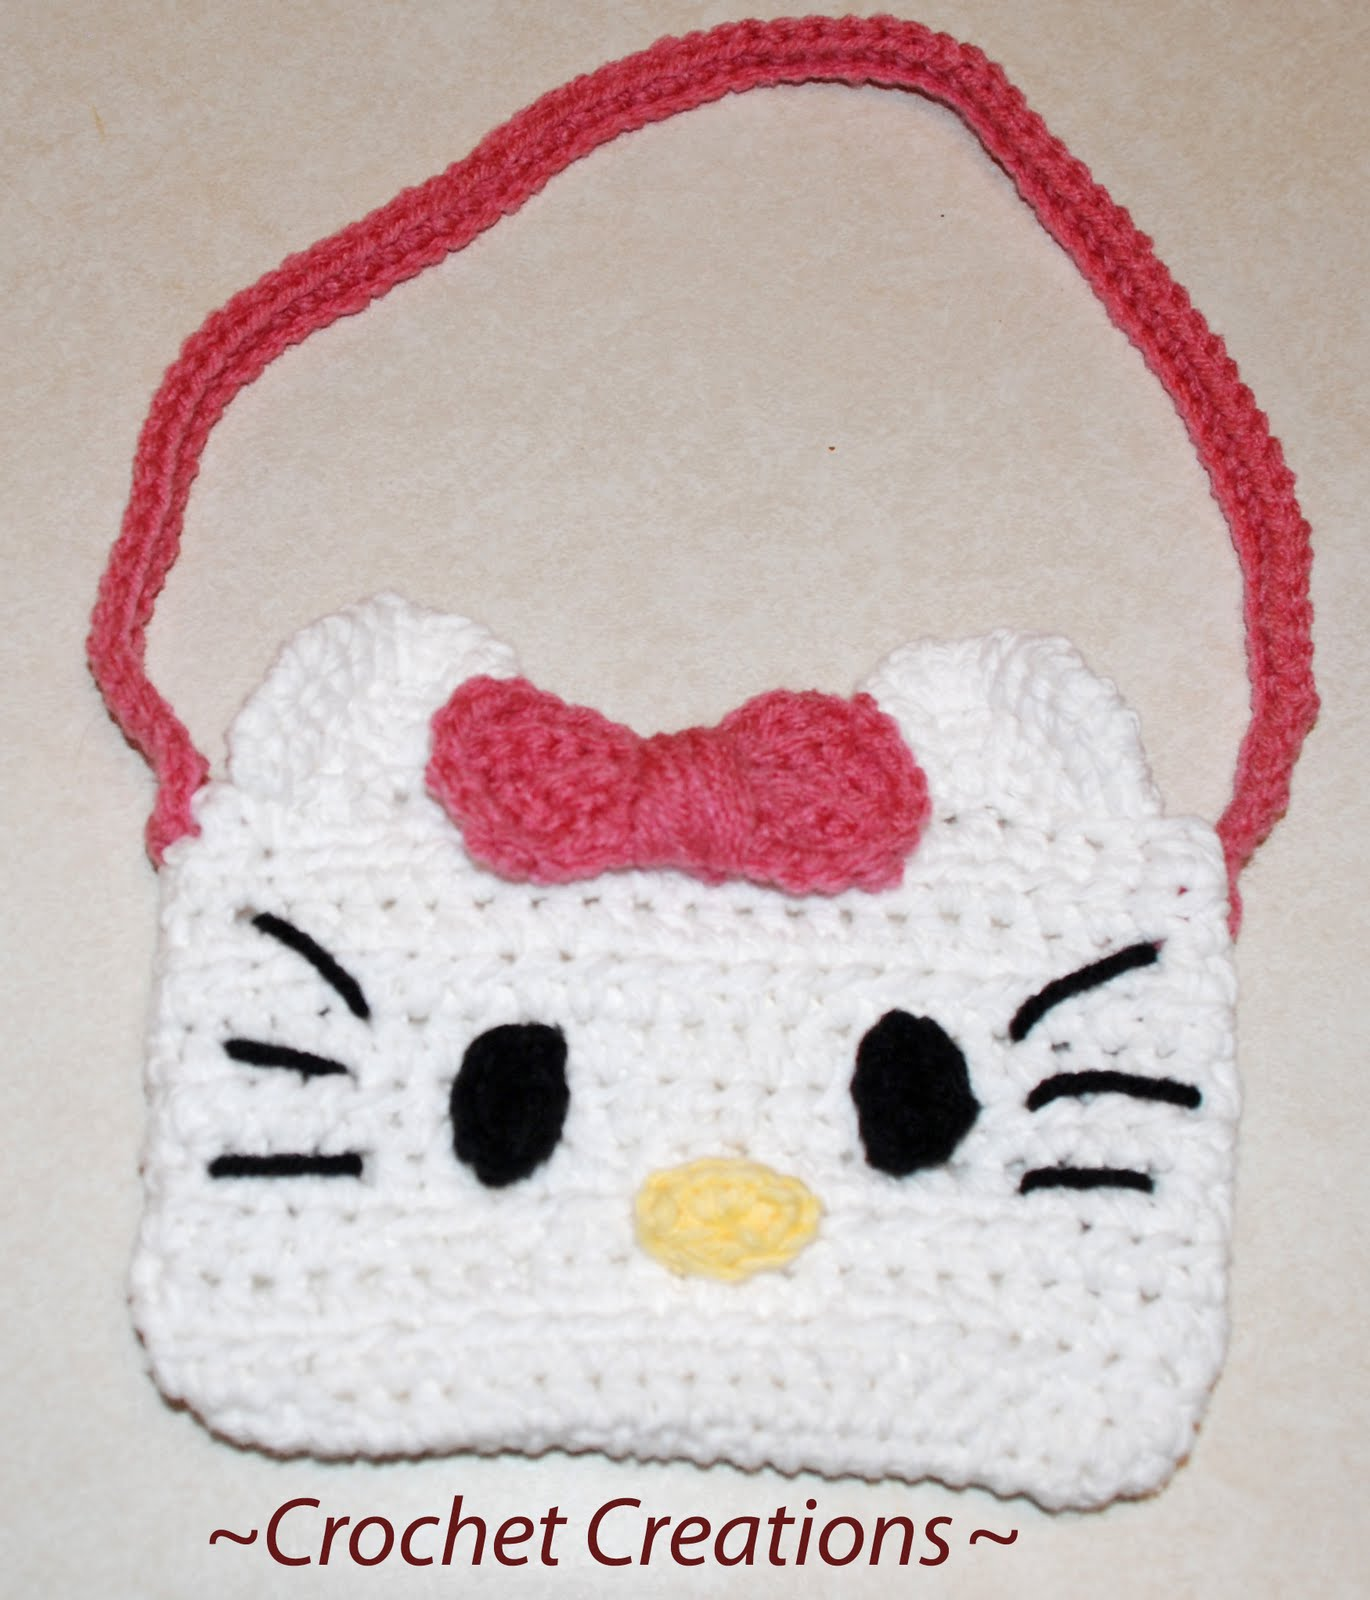 Crochet Purse Patterns Hello Kitty : Gallery For > Crochet Hello Kitty Purse